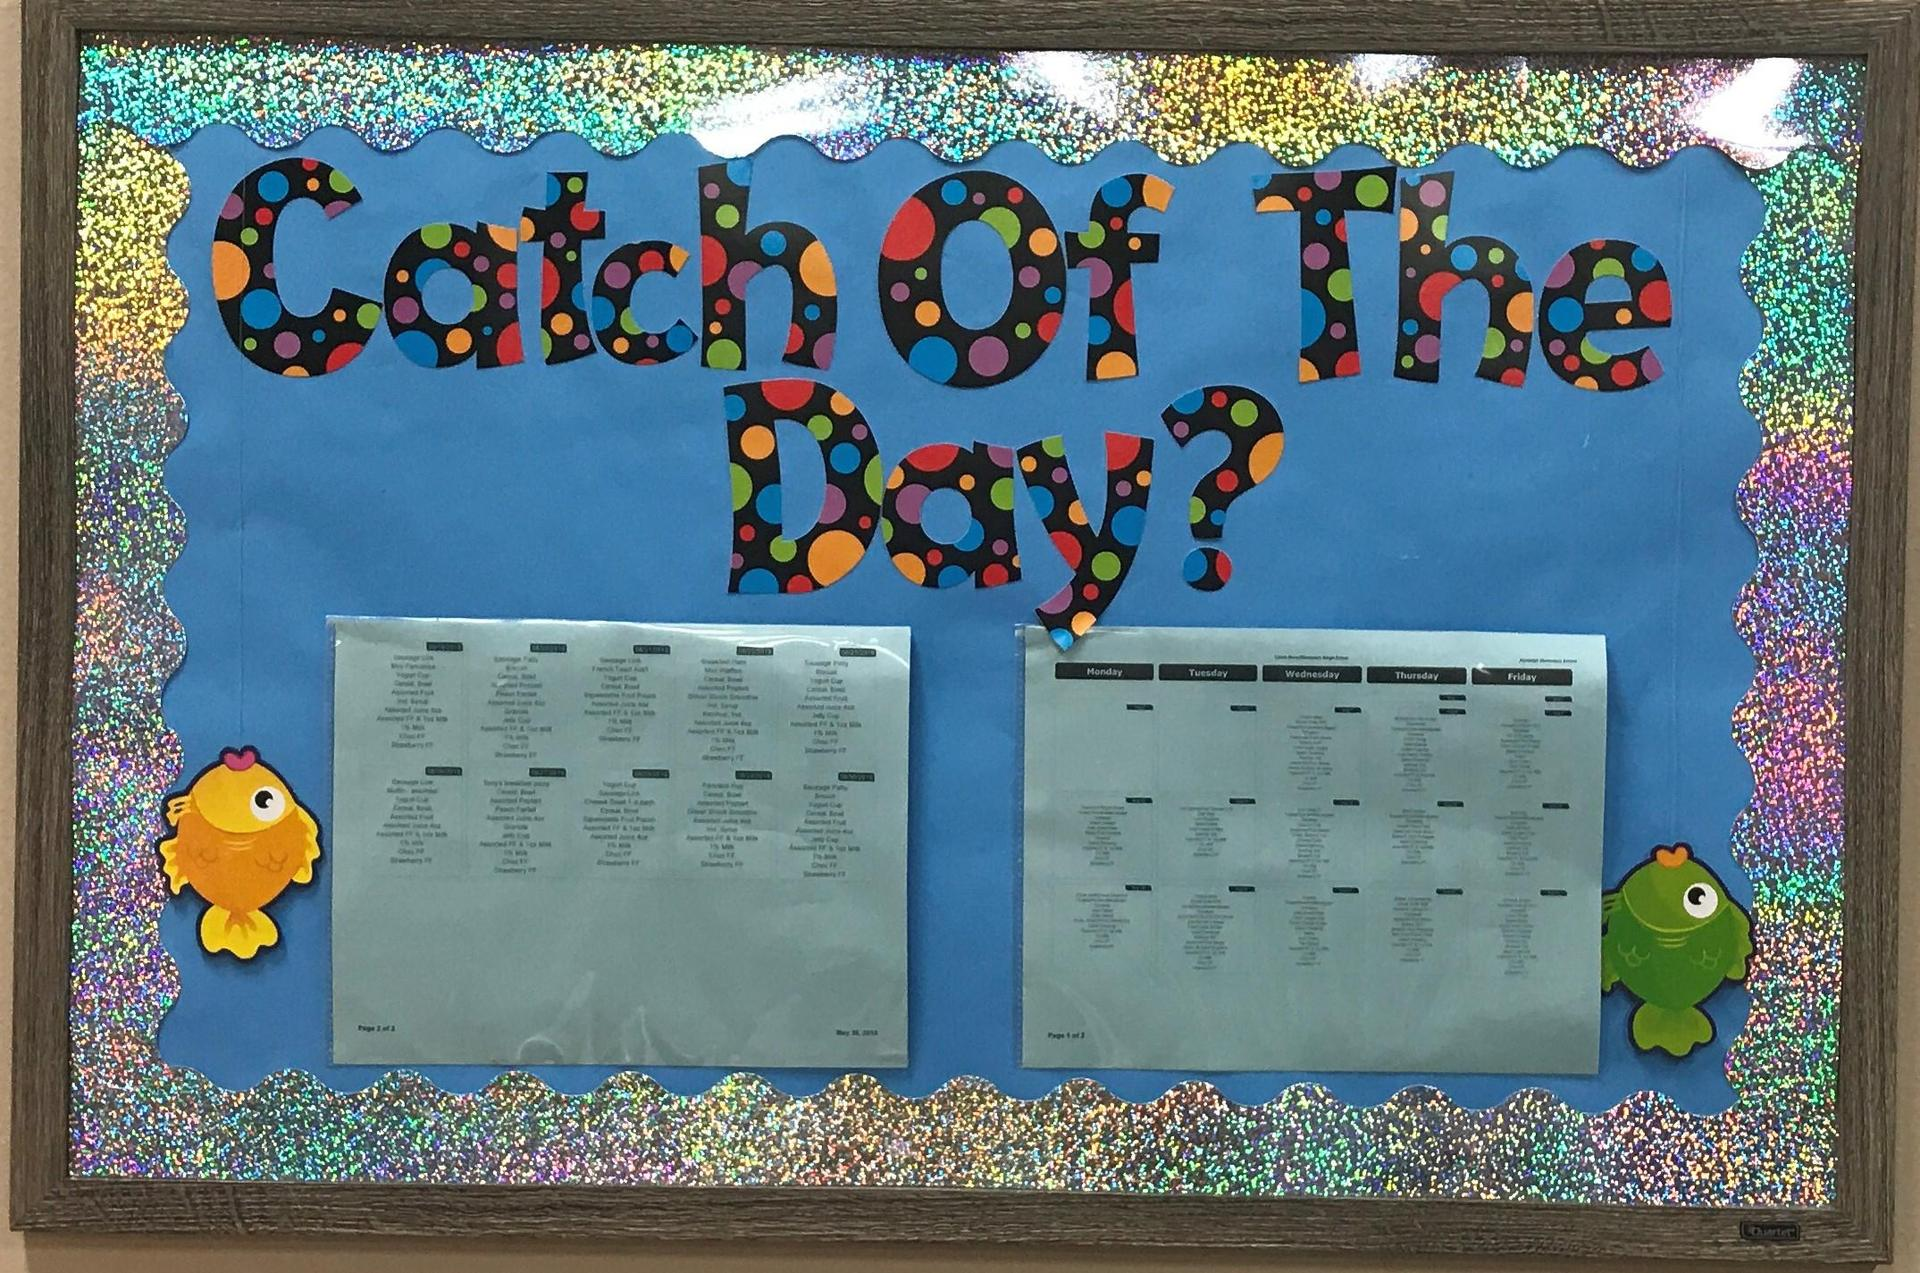 Catch of the Day Bulletin Board at Randolph Elementary